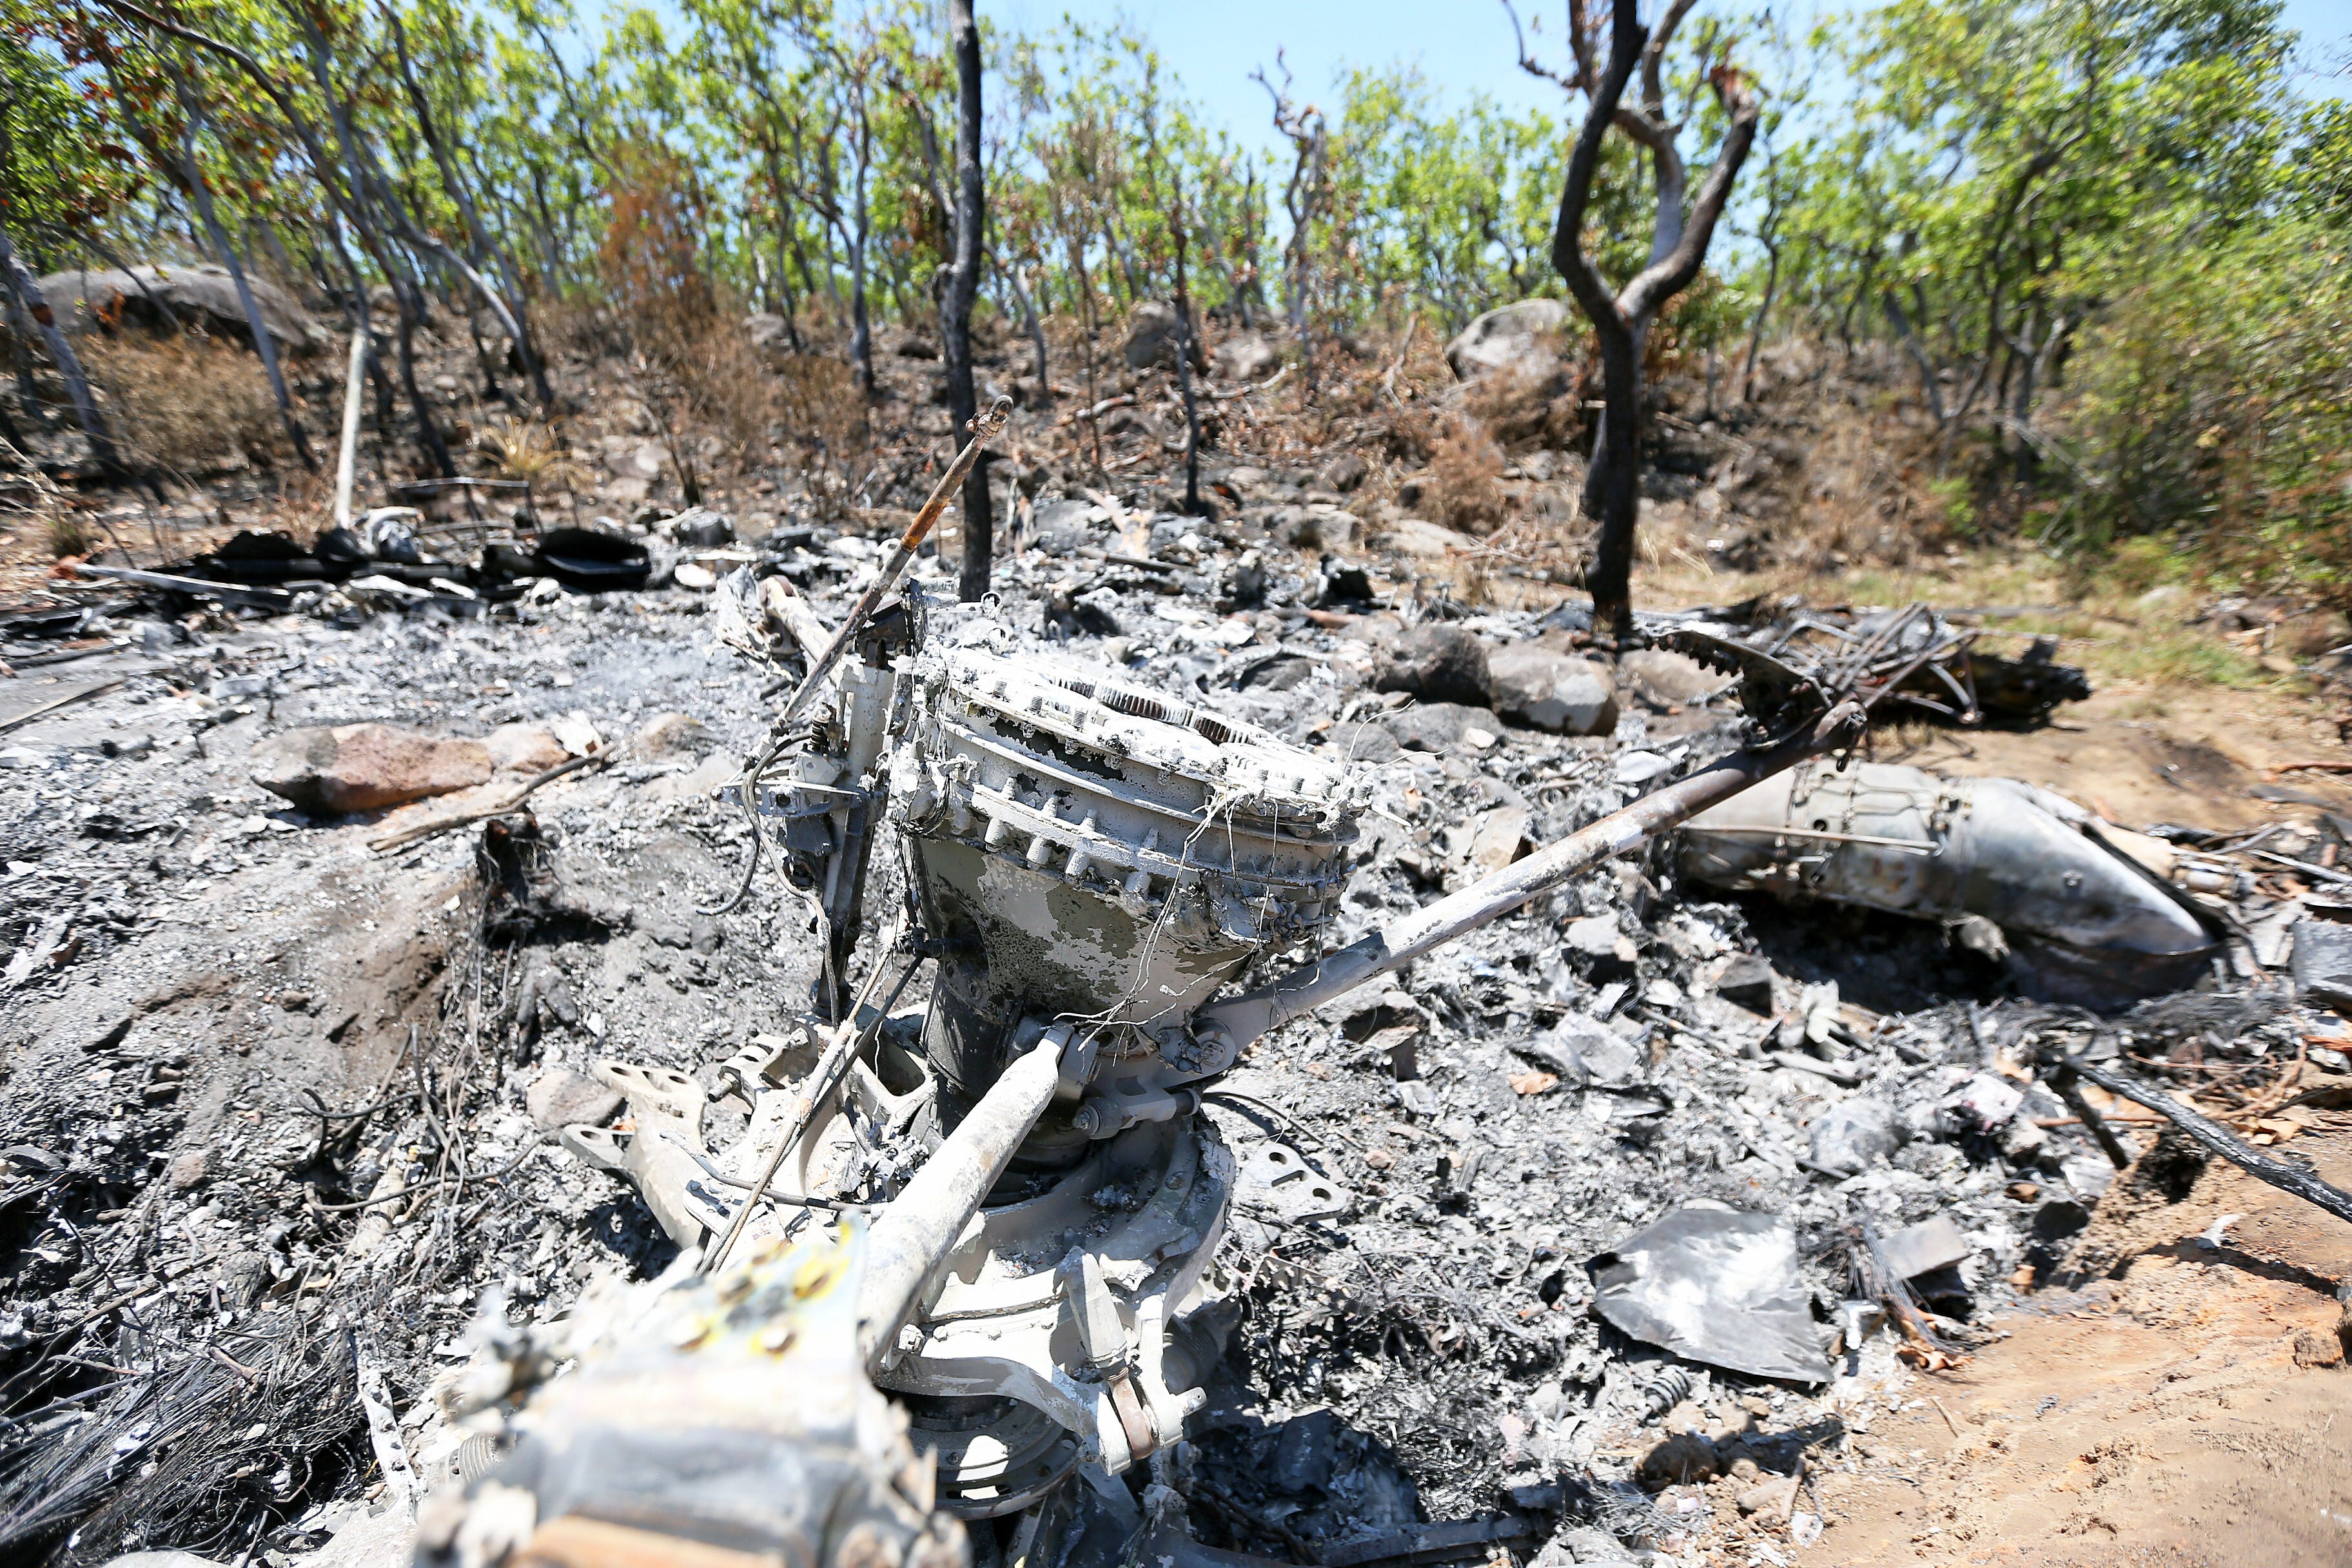 CJNG members shot down a Mexican military helicopter May 1, 2015 as soldiers flew toward a cartel compound in rural Jalisco in hopes of capturing cartel leader El Mencho.